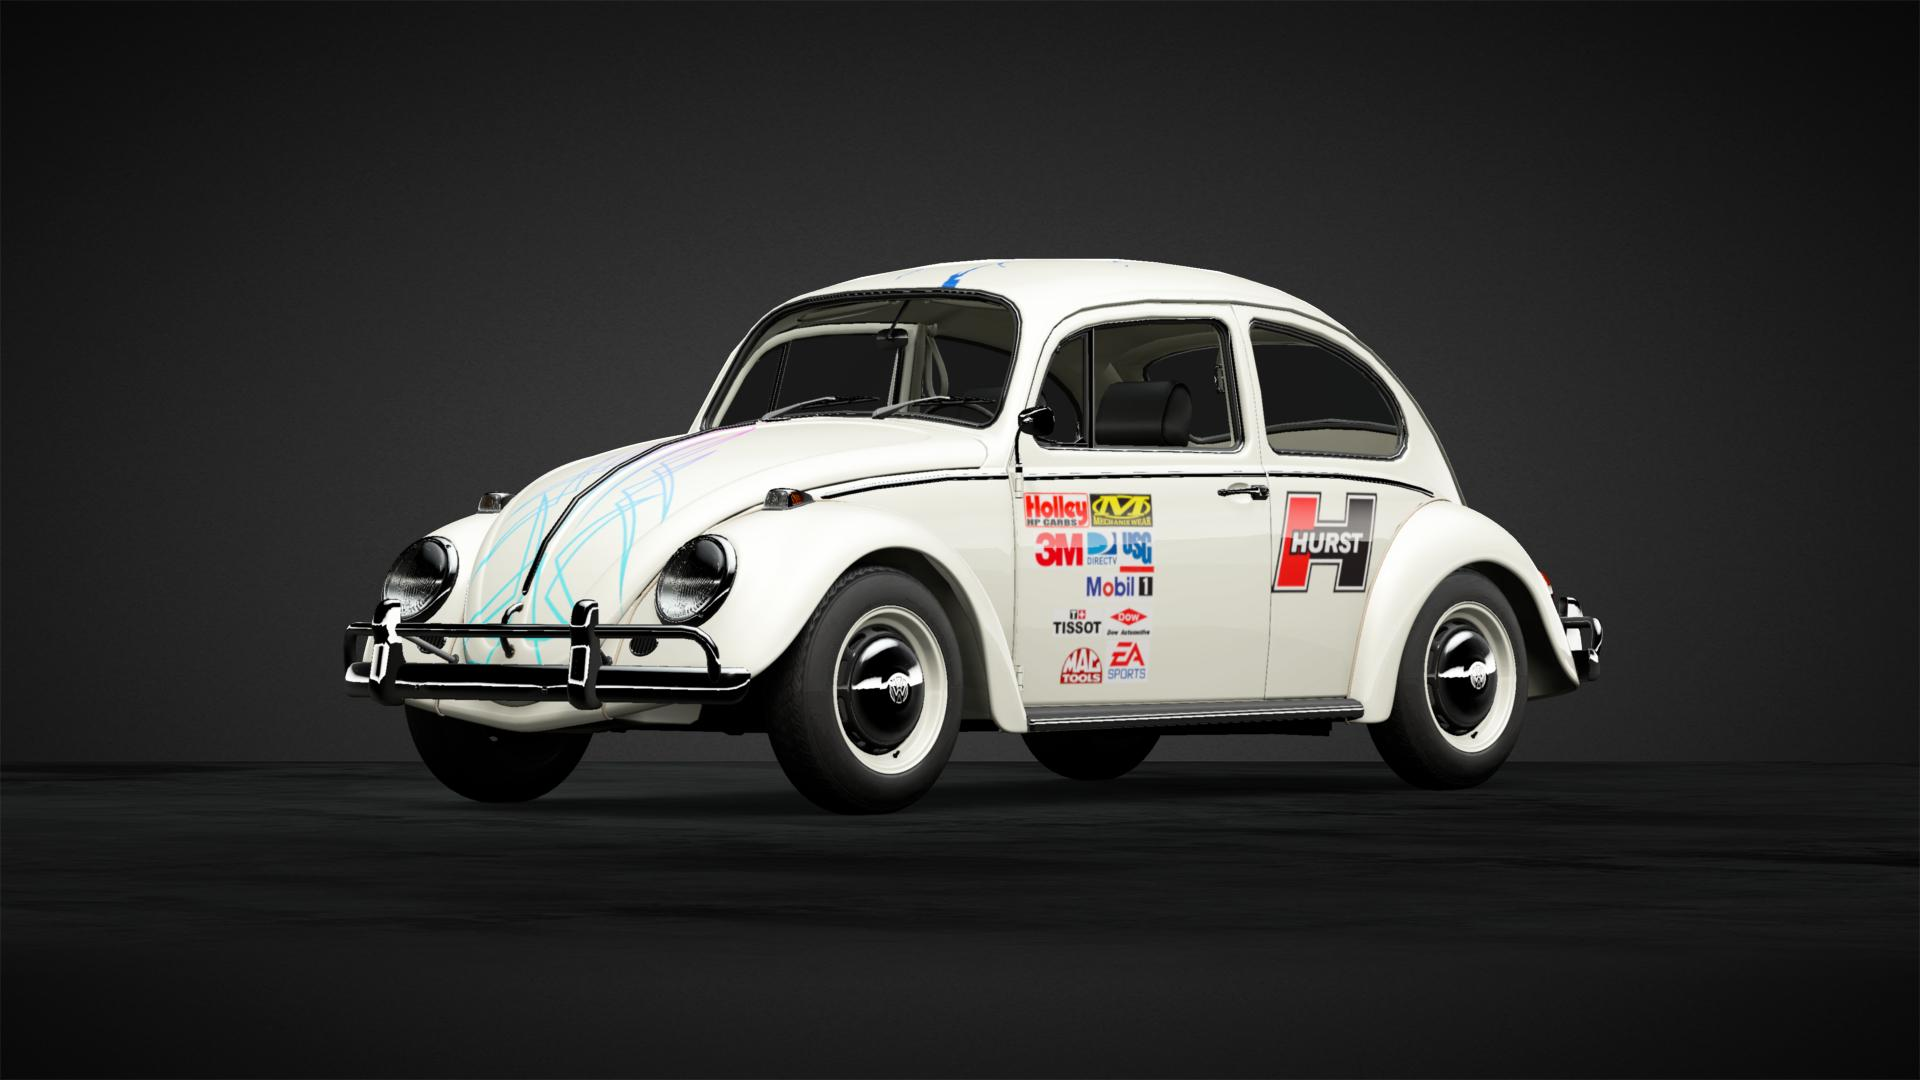 Vw bug livery playing around - Car Livery by jmsberetta